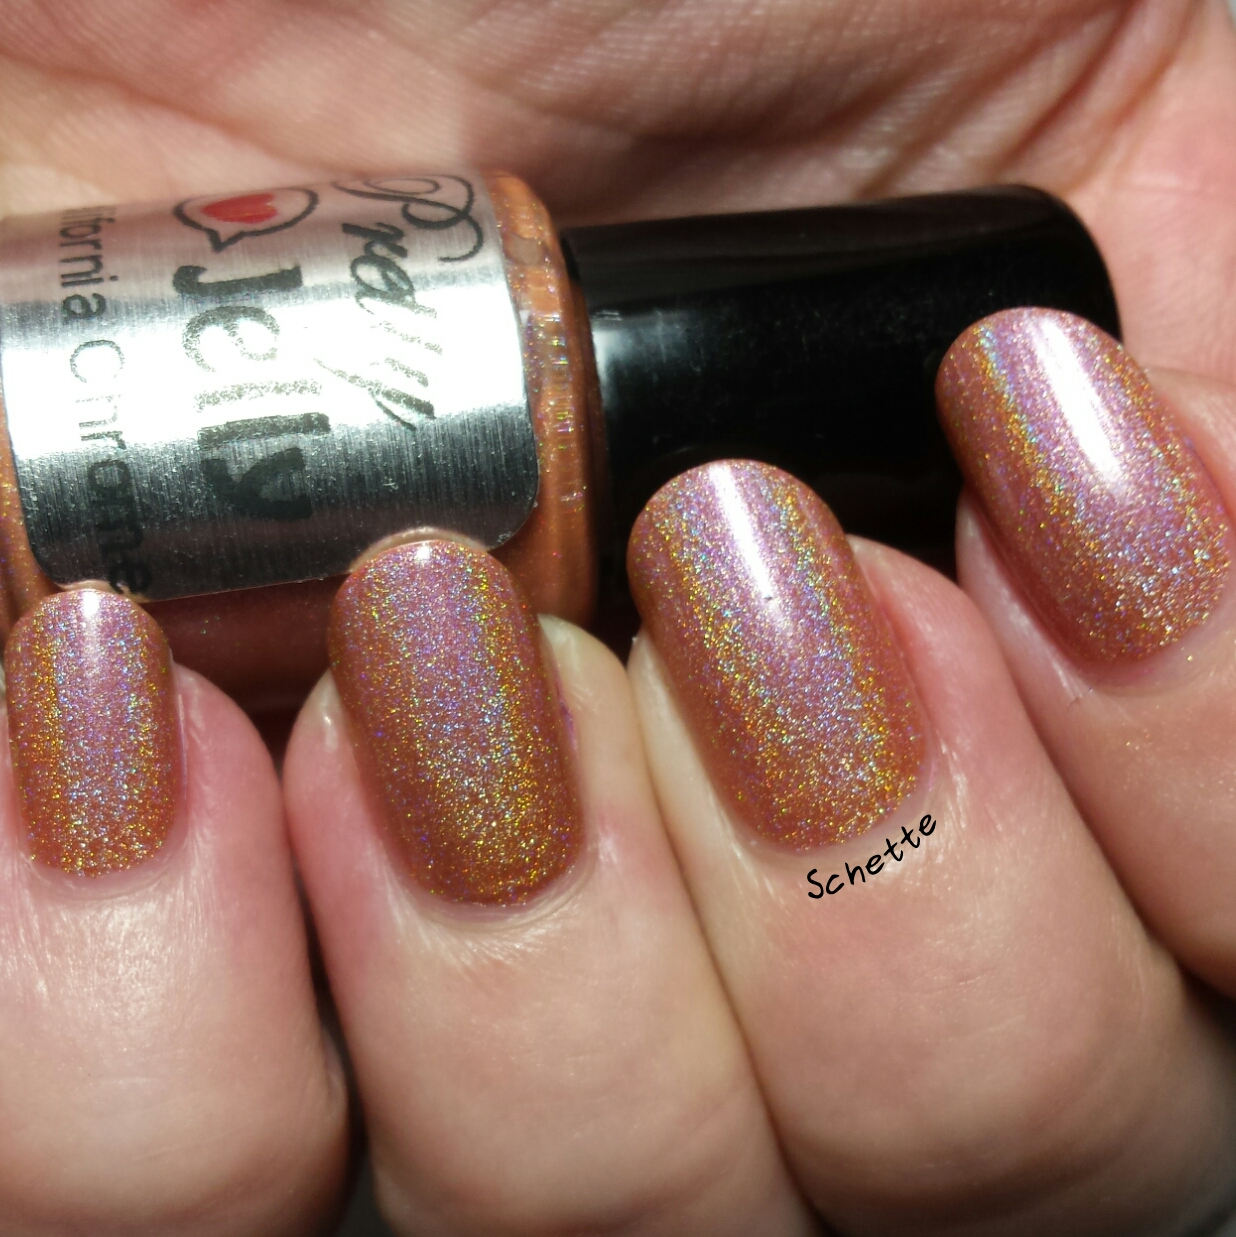 Les vernis Pretty Jelly Radiance, Dragon Breath, California Chrome et Thessalonike